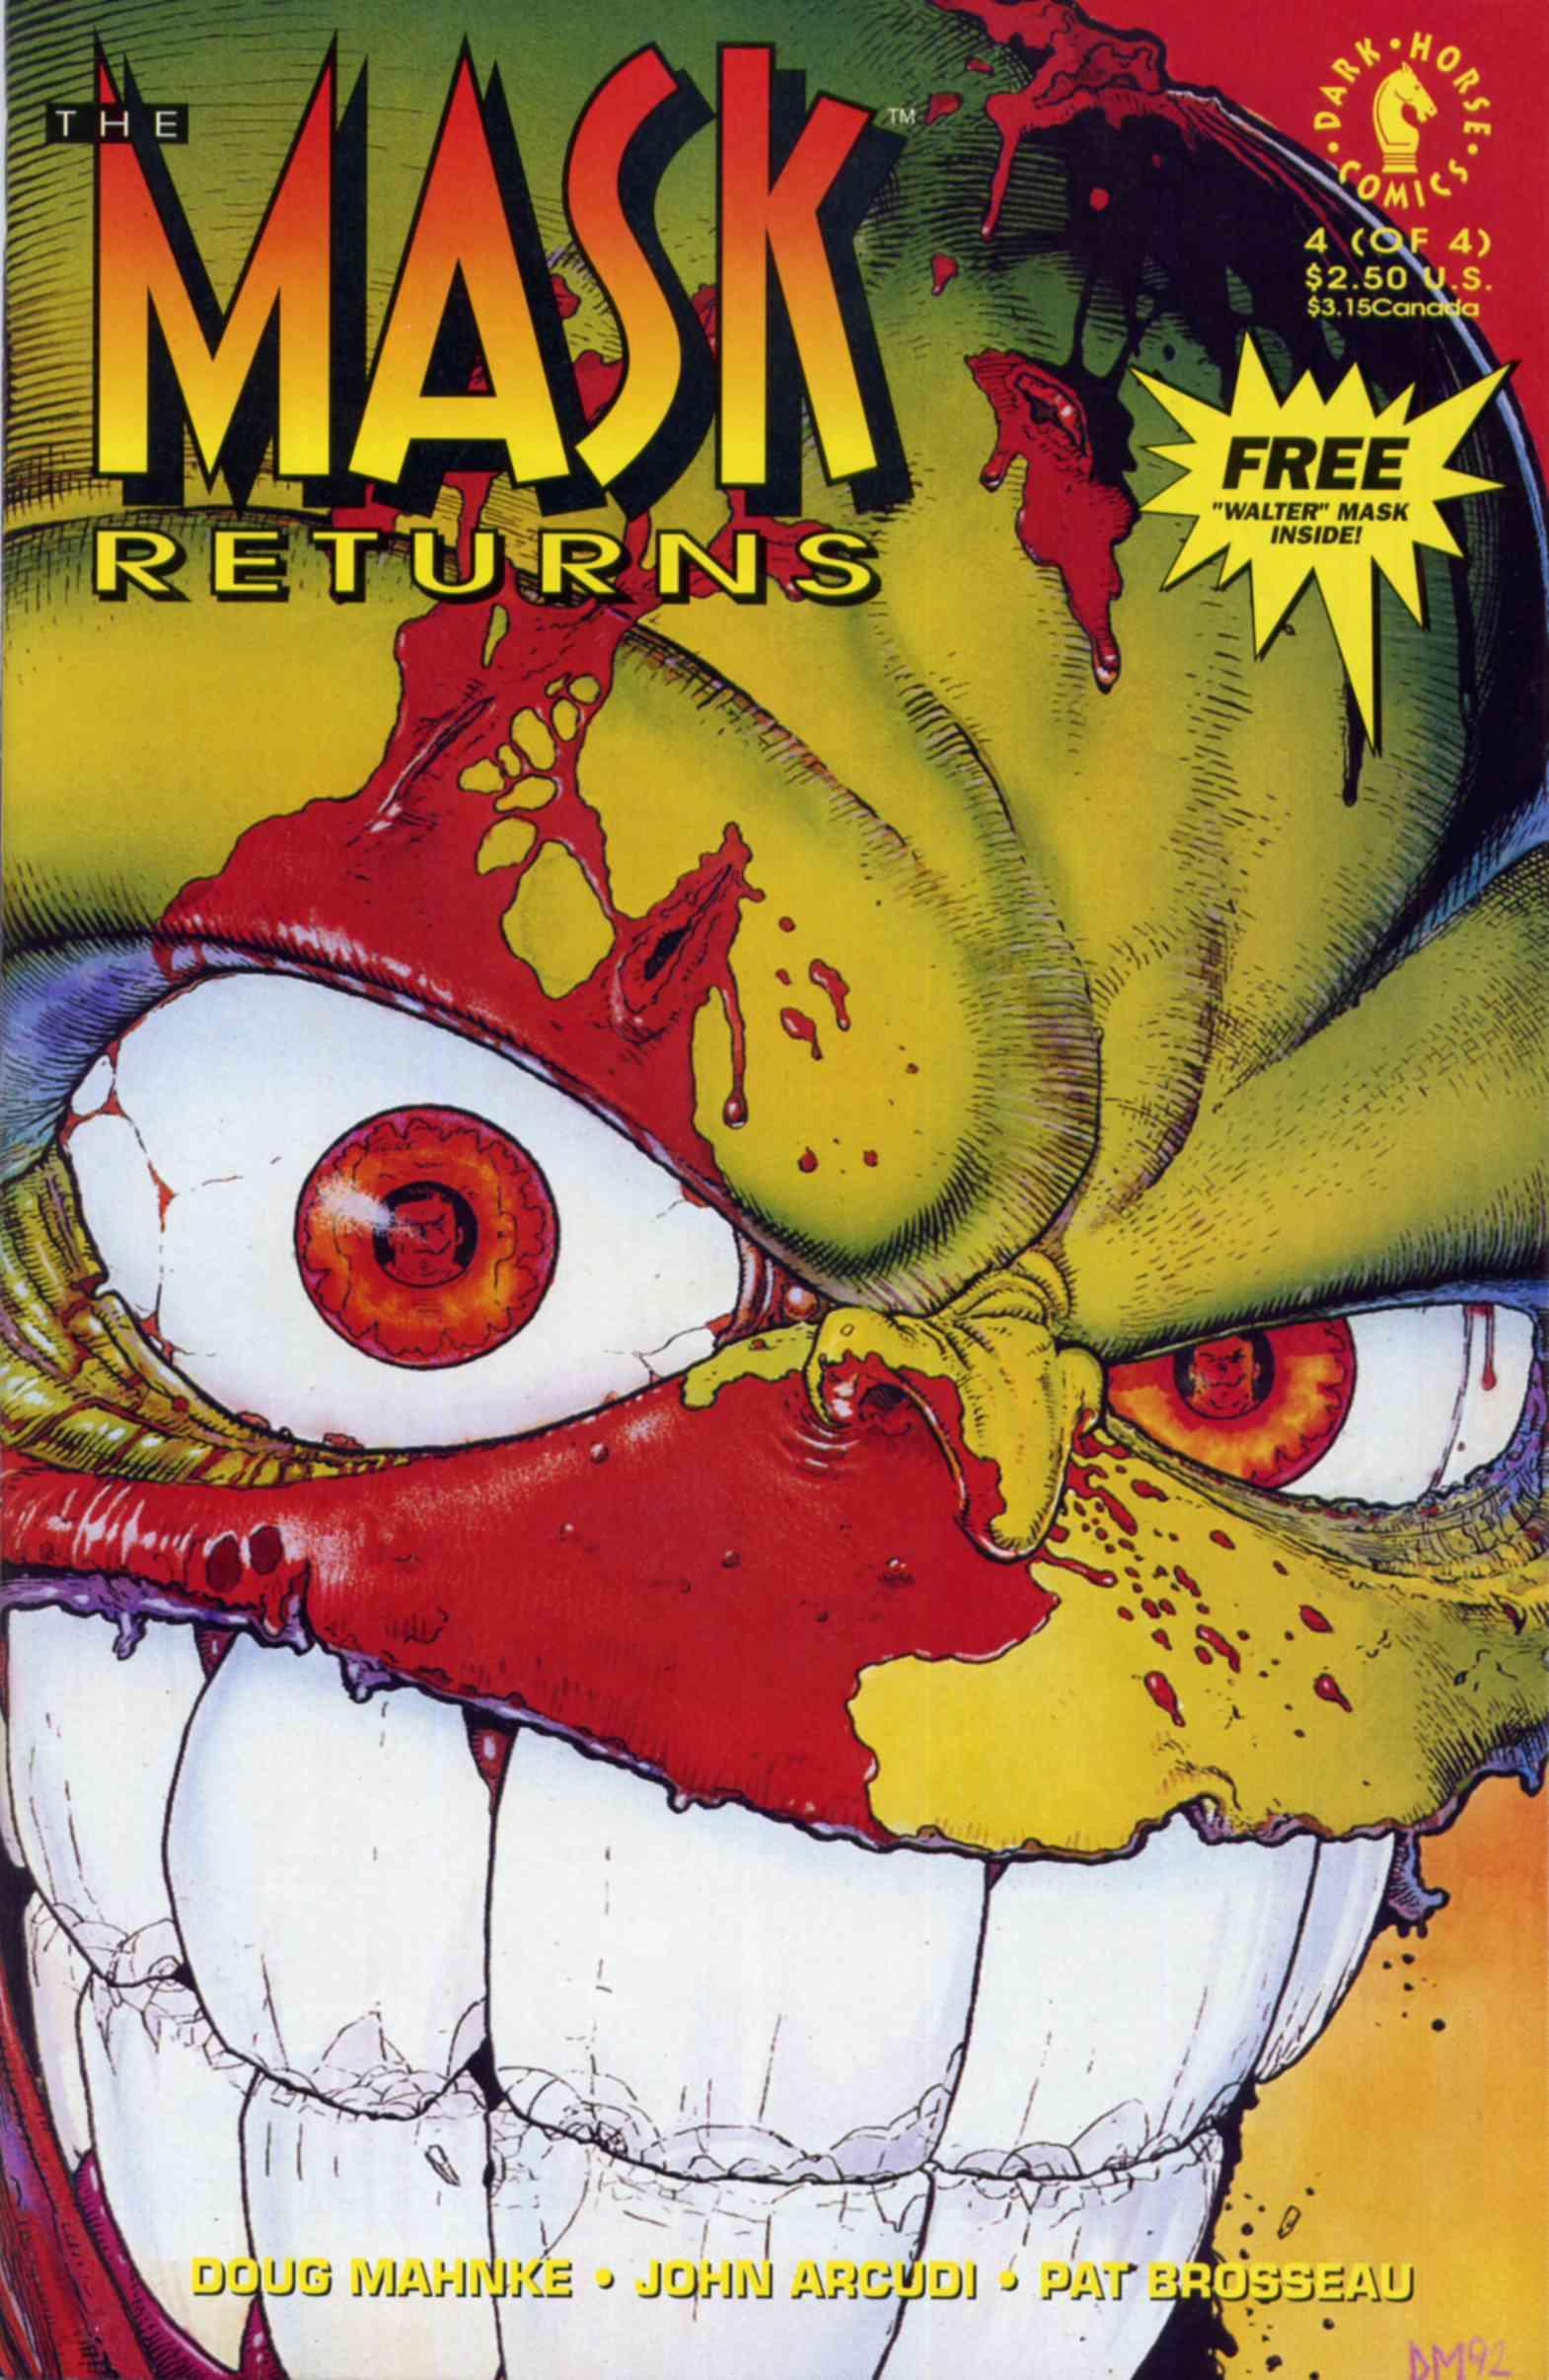 The Mask Returns Issue 4